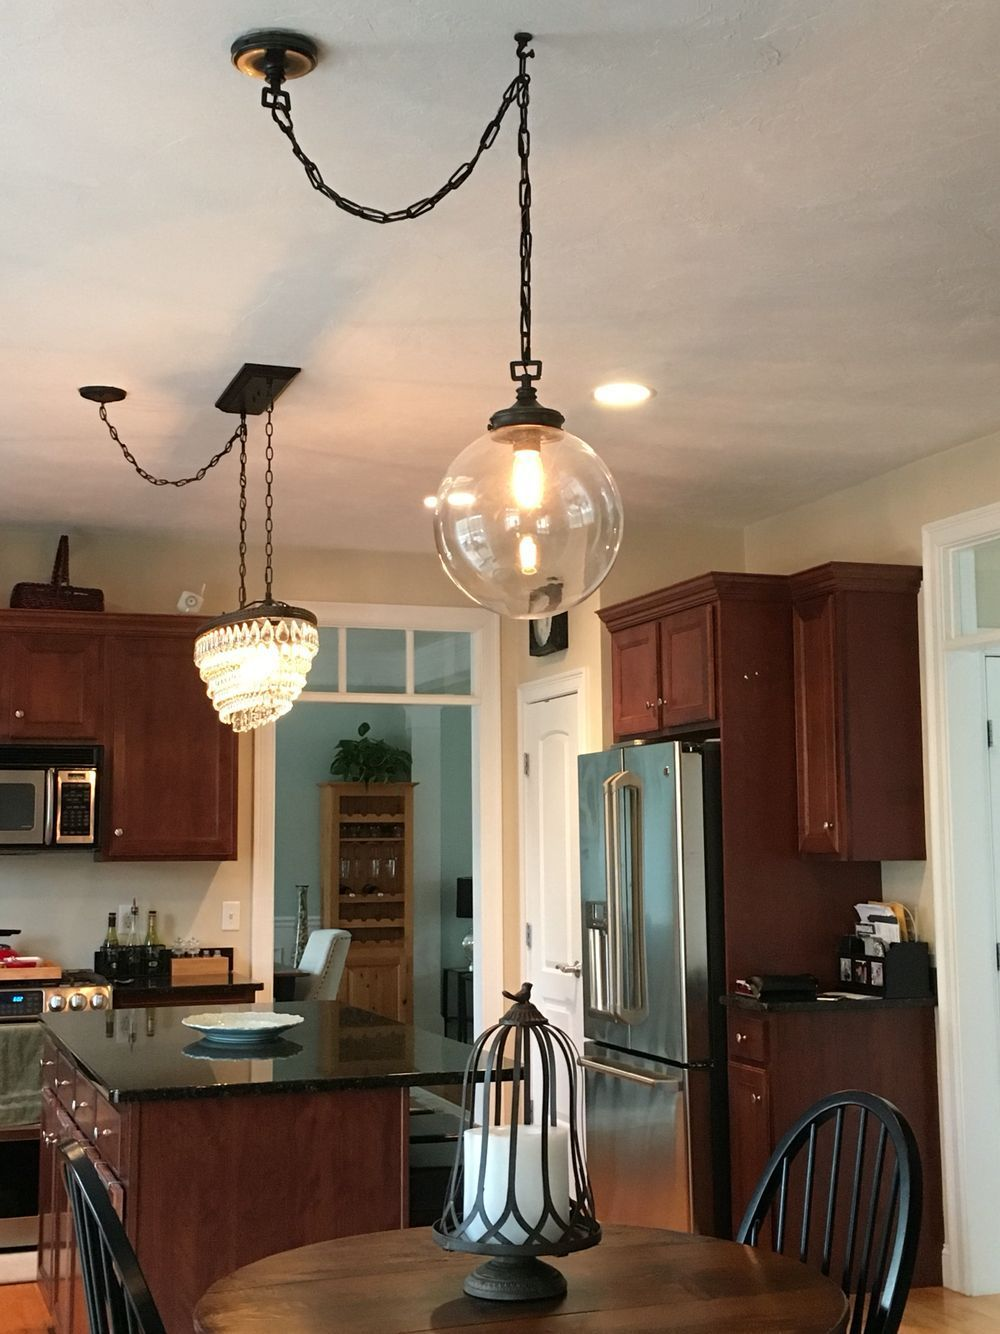 Lighting Over The Farmhouse Table The Winner All Things Heart And Home Farmhouse Dining Room Lighting Kitchen Lighting Over Table Kitchen Table Lighting